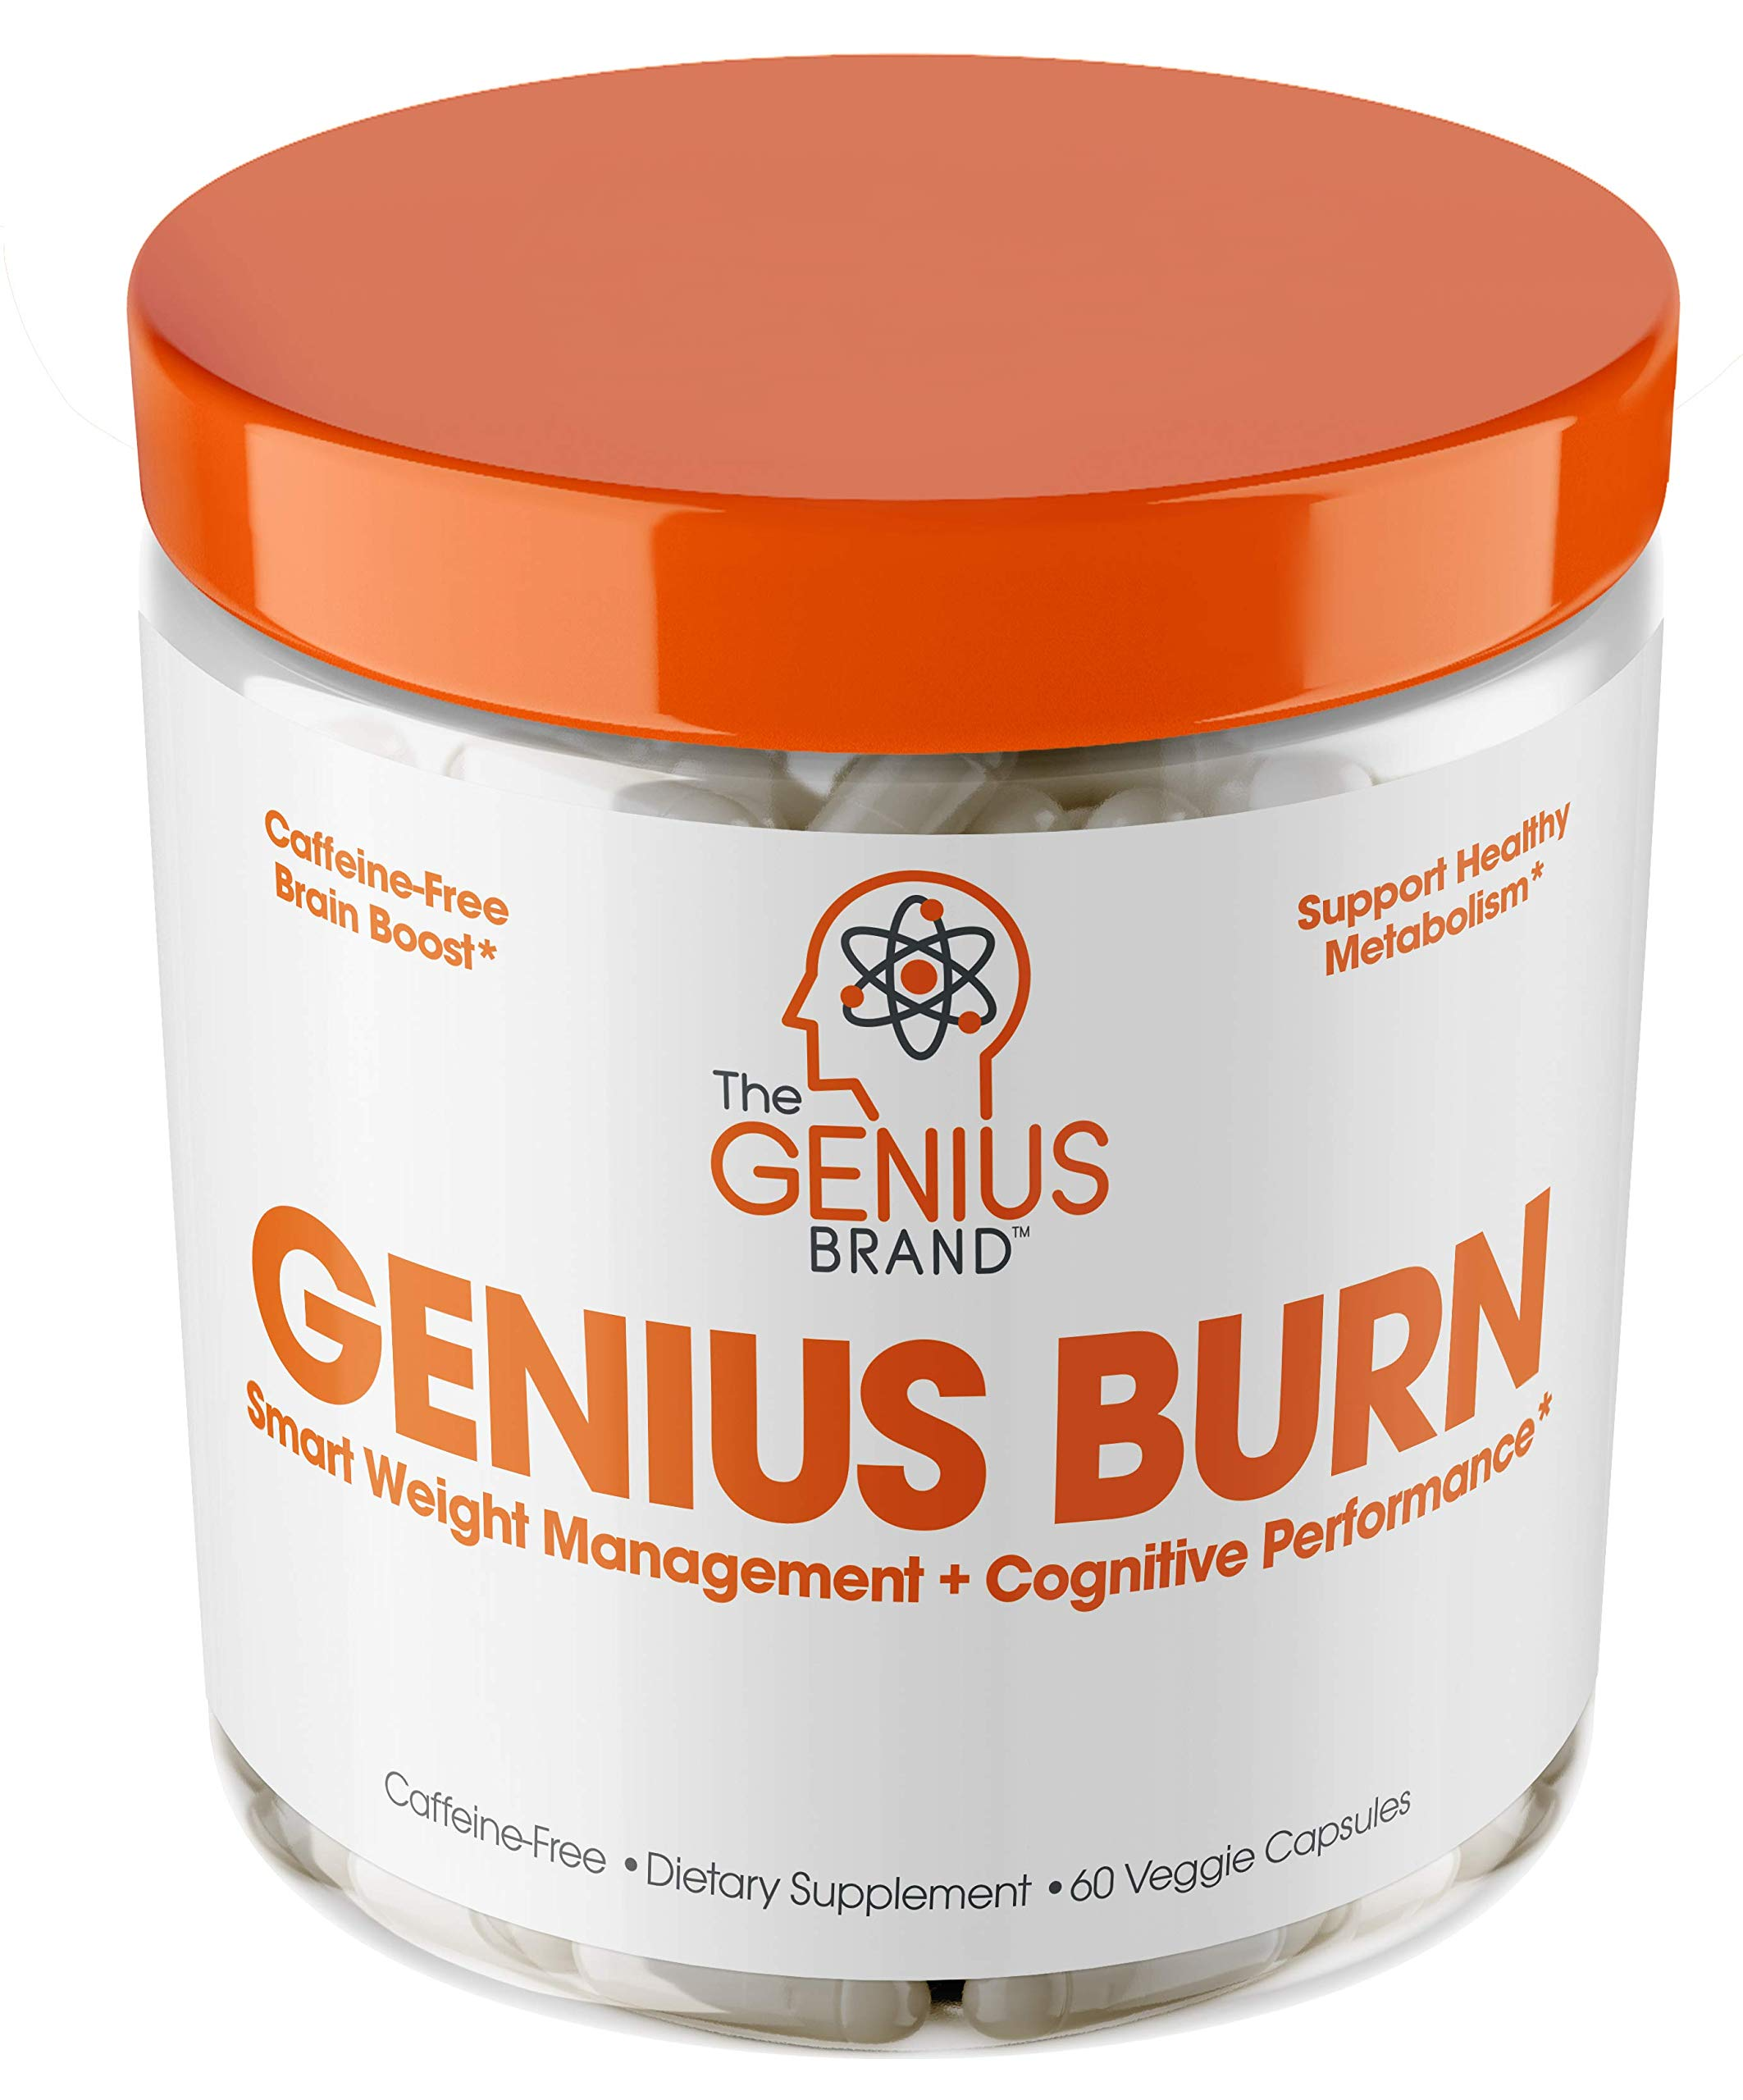 Genius Fat Burner - Thermogenic Weight Loss & Nootropic Focus Supplement - Natural Metabolism & Energy Booster for Men & Women | Thyroid Support and Appetite Suppressant w/ Gymnema Sylvestre, 60 Pills by The Genius Brand